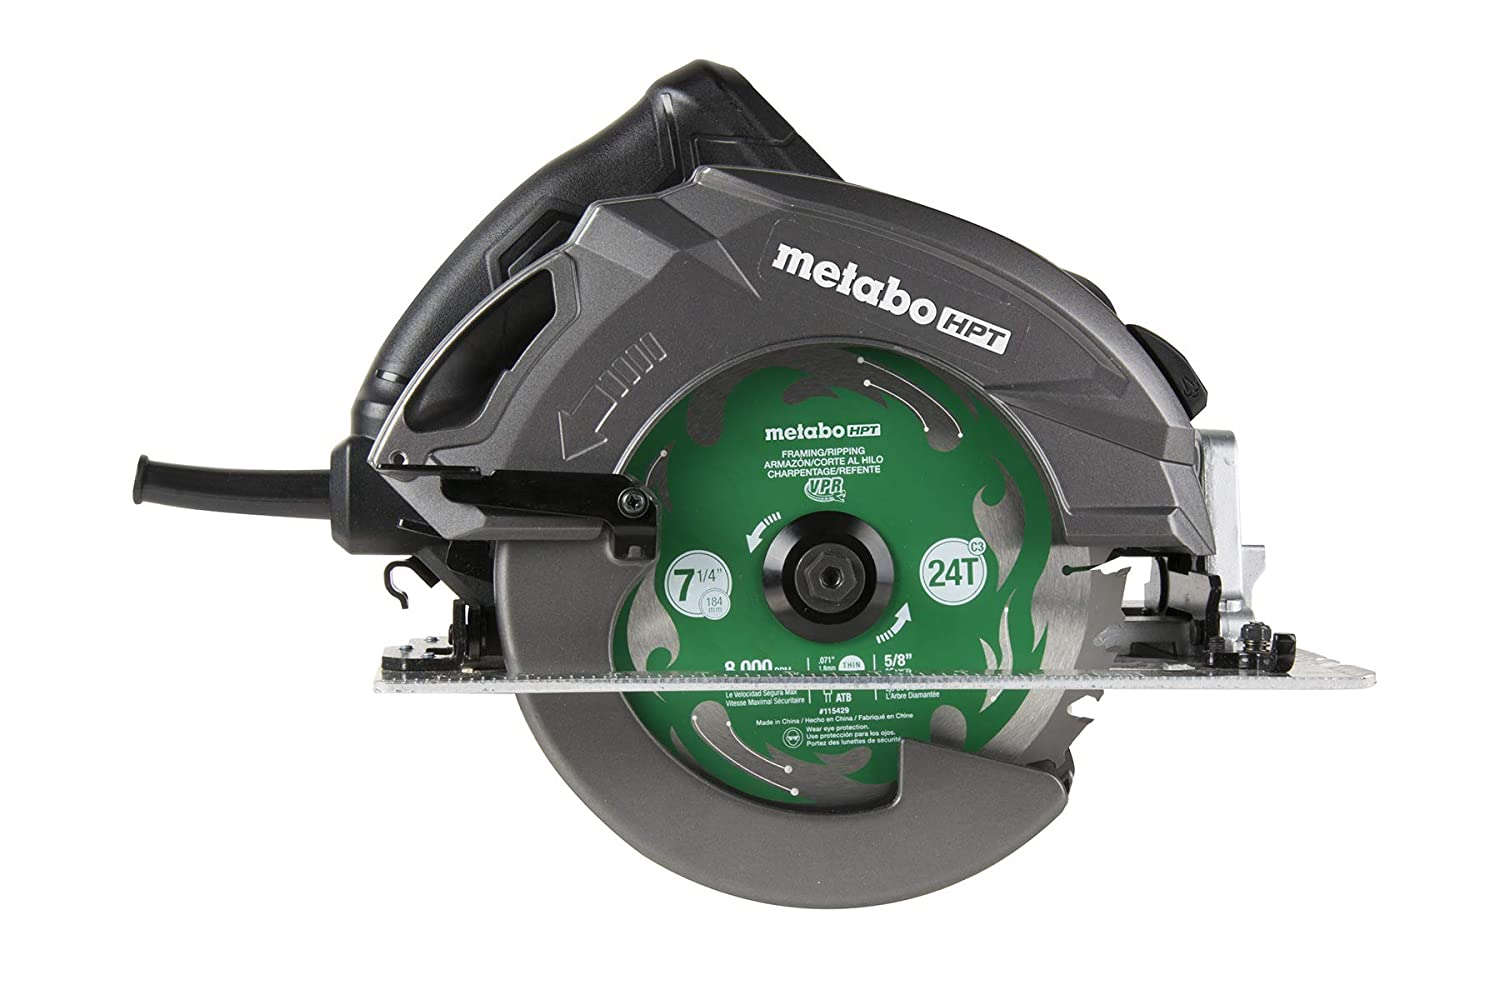 Metabo HPT C7UR RIPMAX Pro 7-1 4-Inch Circular Saw Kit, 6,800 RPM, 15-amp Motor, Dust Blower Function, 24T Premium Framing VPR Blade, Unique Cord Hook, Carrying Bag, 5-Year Warranty